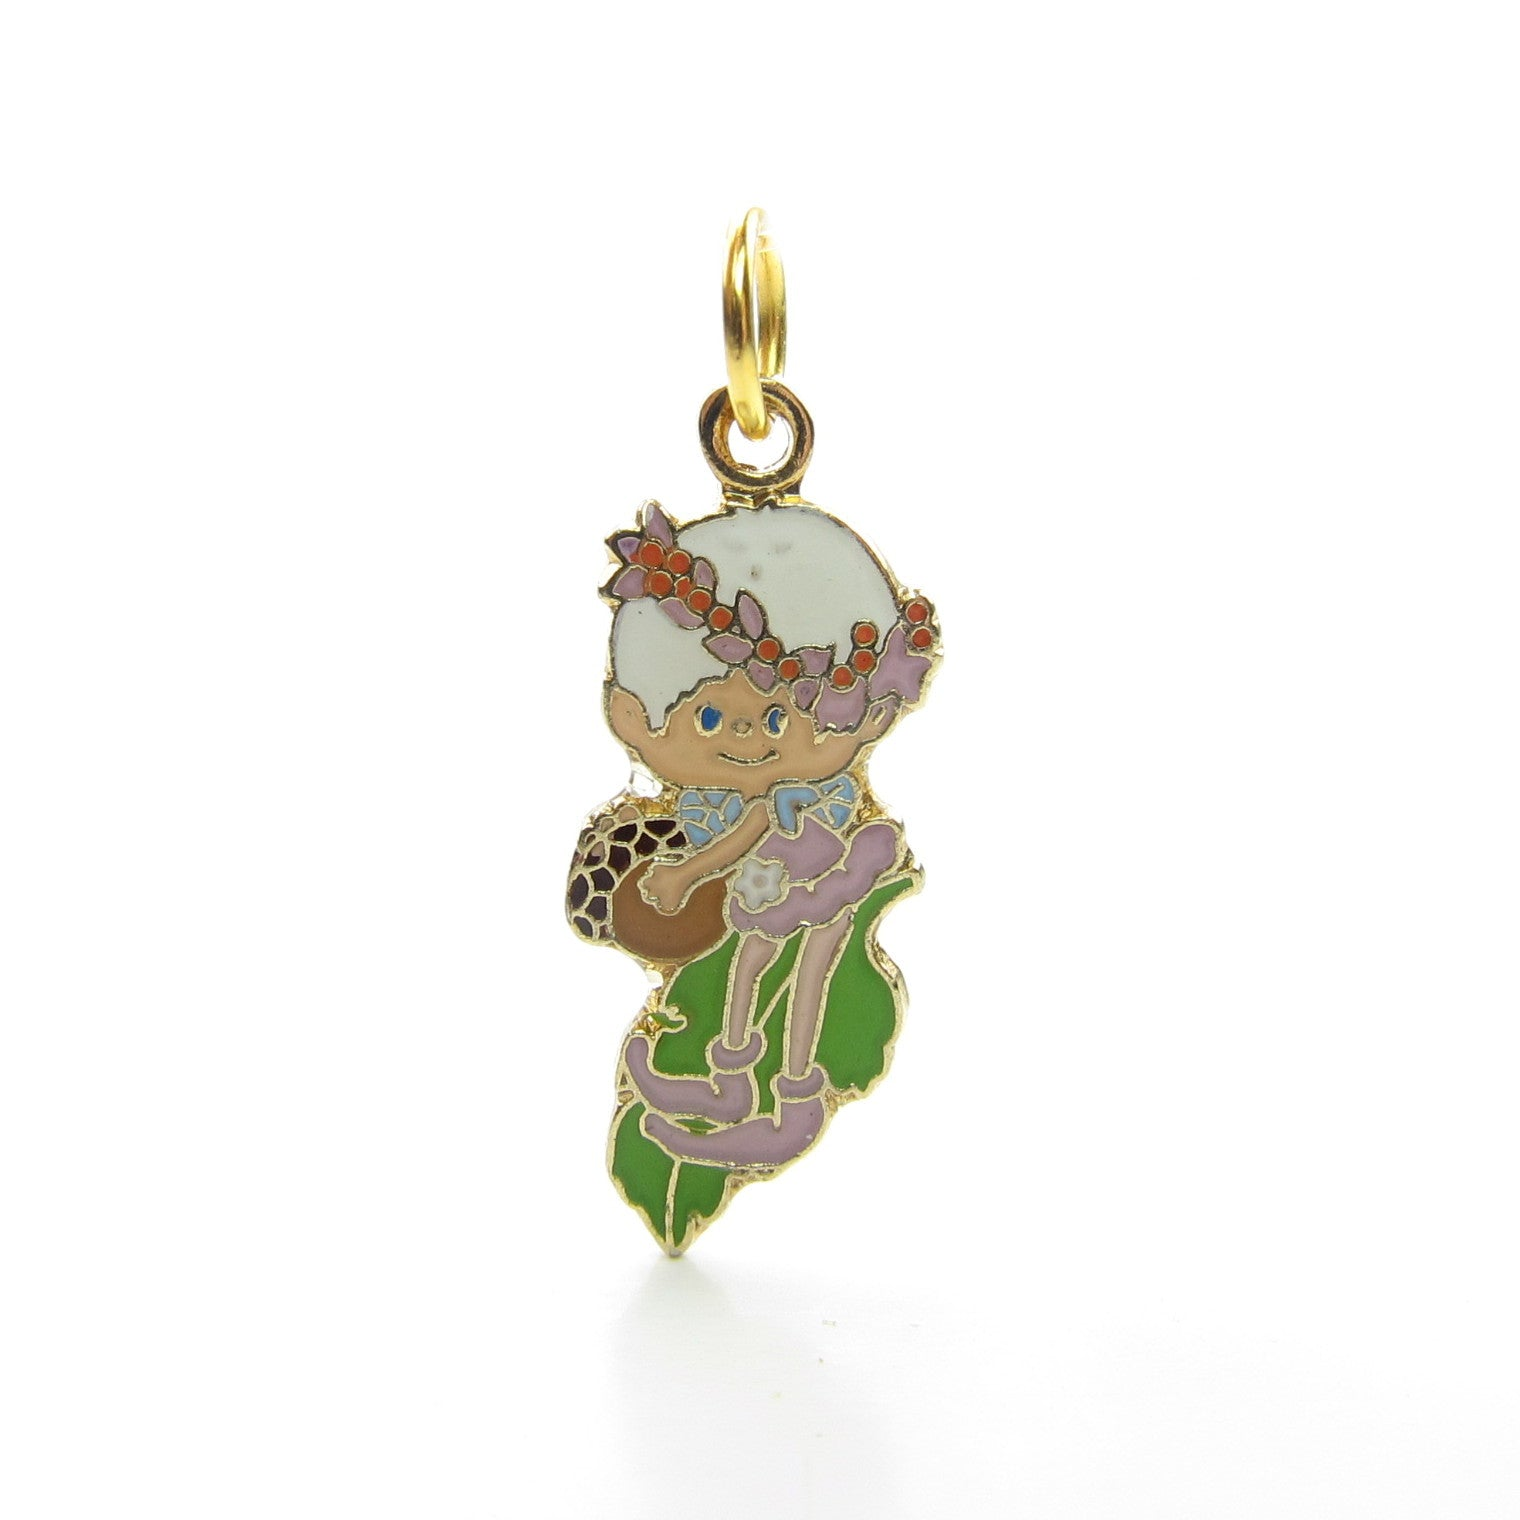 Snowdrop charm or pendant Herself the Elf jewelry